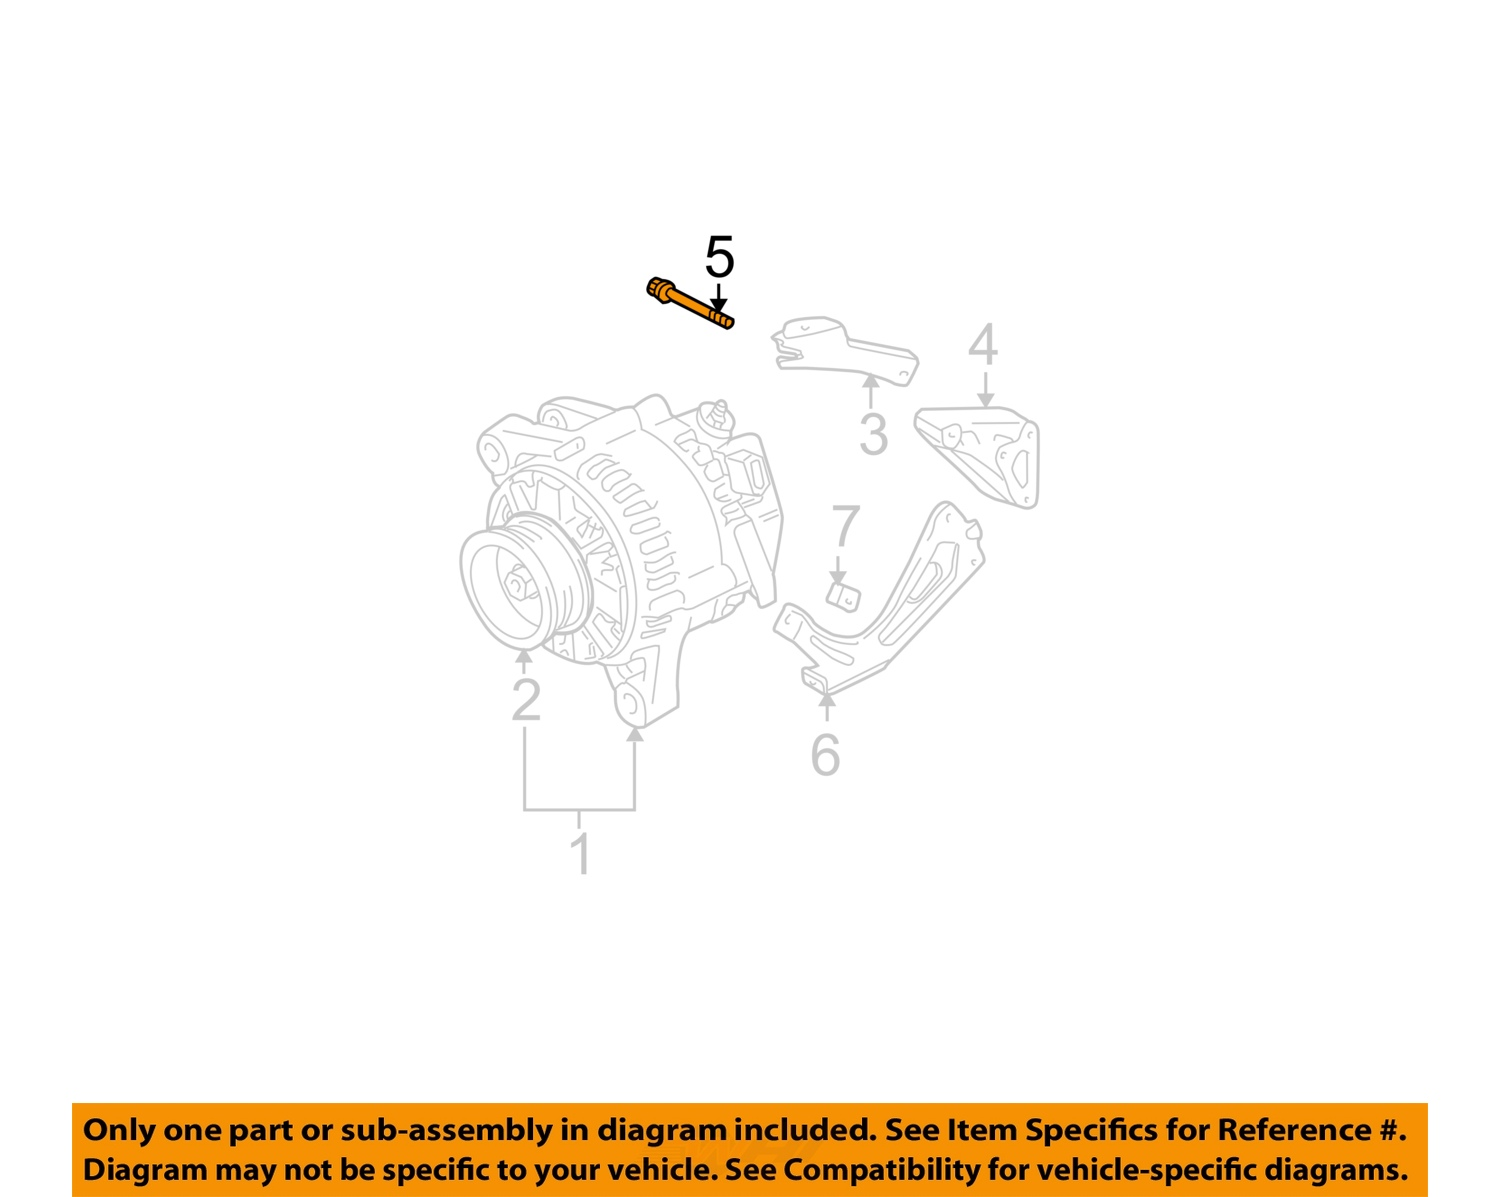 Toyota 3 0 V6 Bolt Diagram All Kind Of Wiring Diagrams \u2022 Nissan 3.0  Vacuum Diagram 1994 Toyota 3 0 V6 Vacuum Diagram